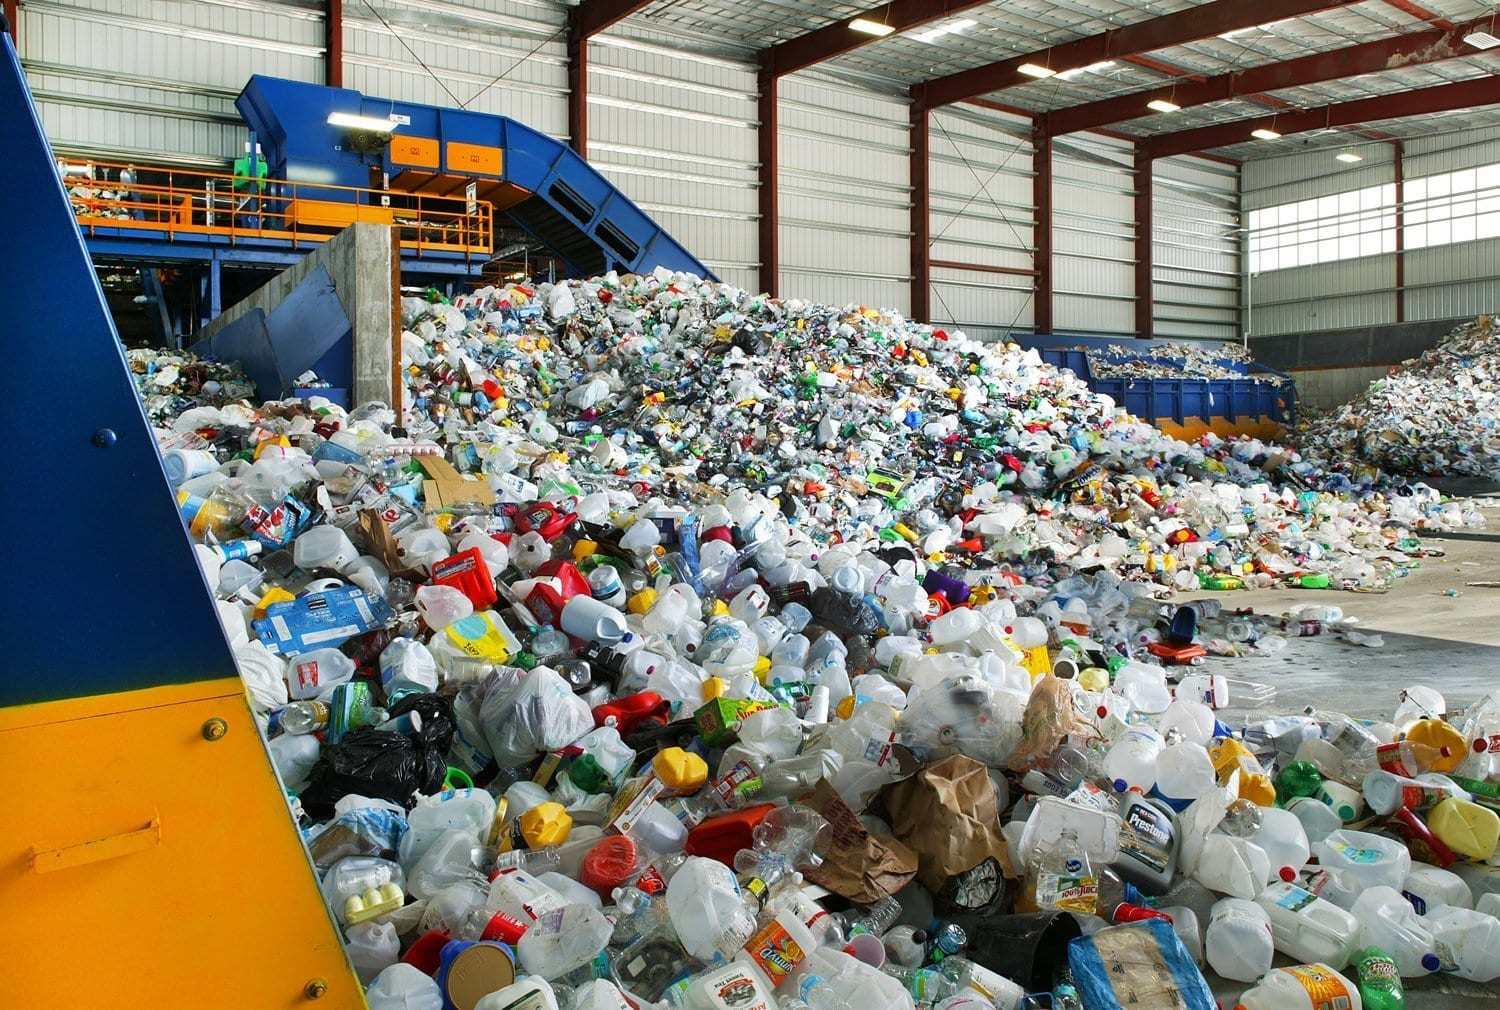 Machinex Recycling Sorting Systems Plastic Recycling